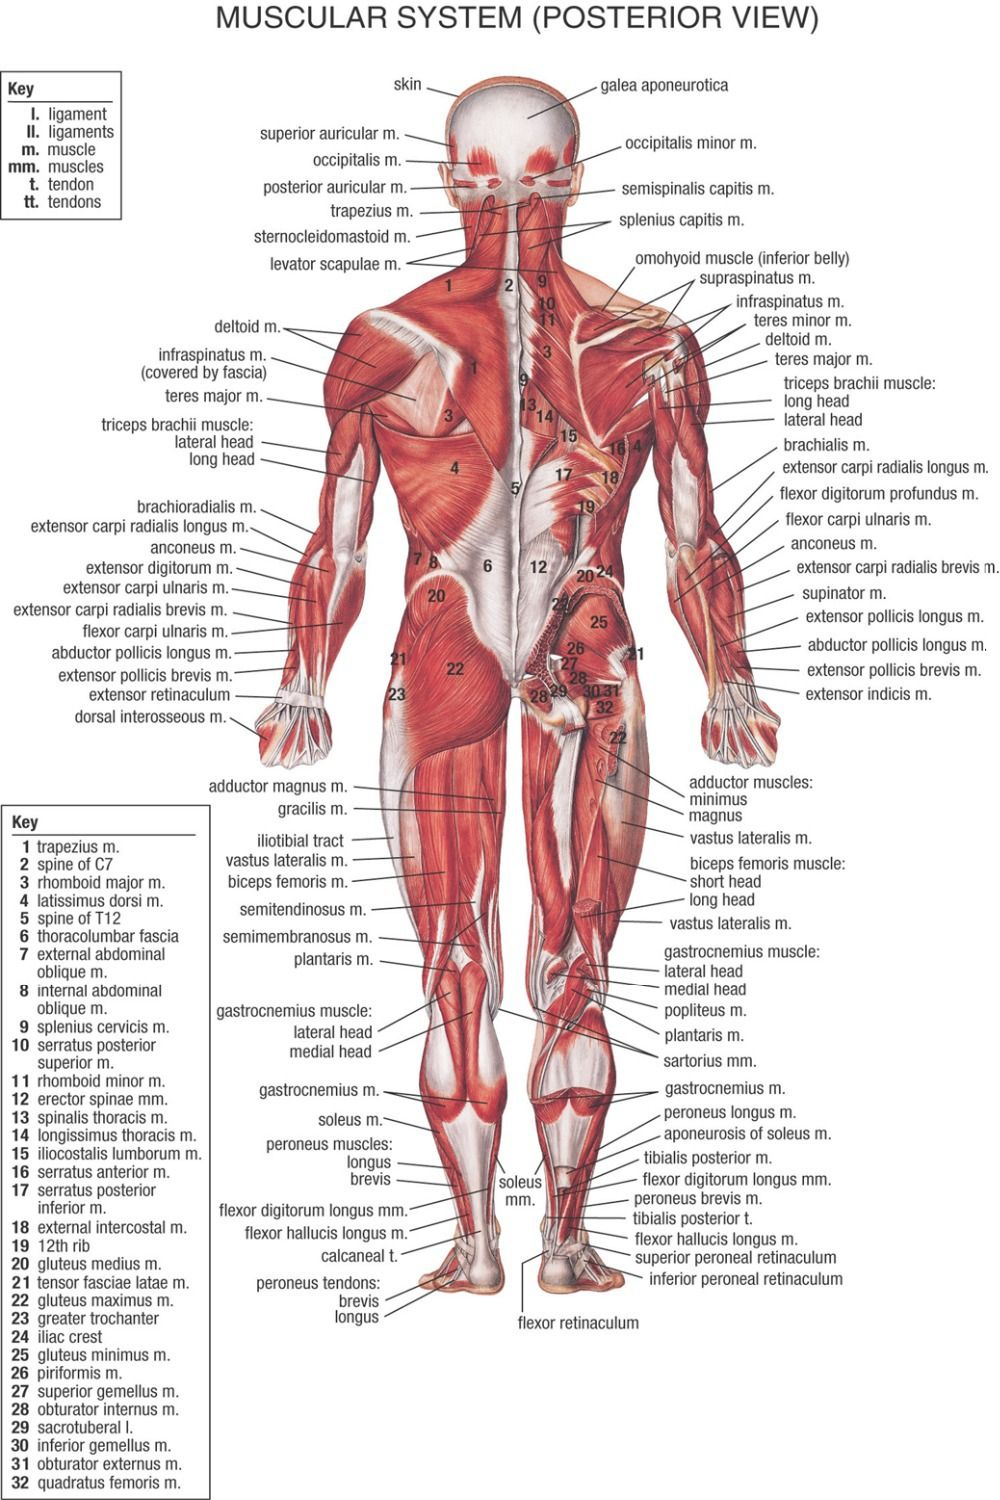 muscular system chart printable 1947 - Google Search | Anatomy and ...